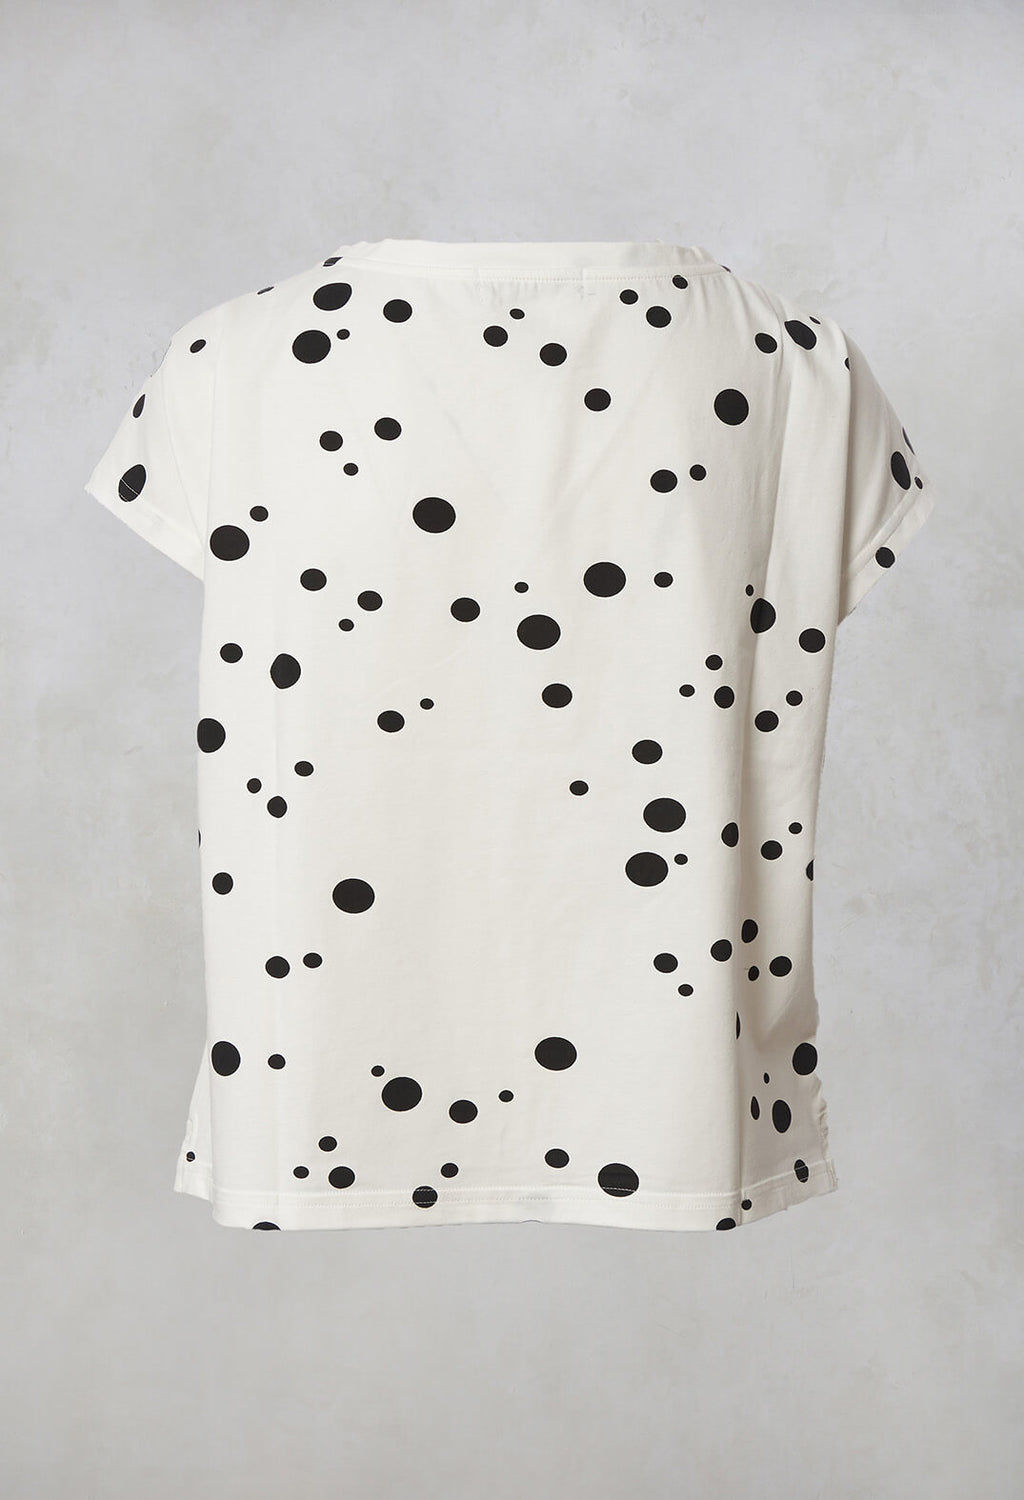 Nilo S Printed T-Shirt in Latte